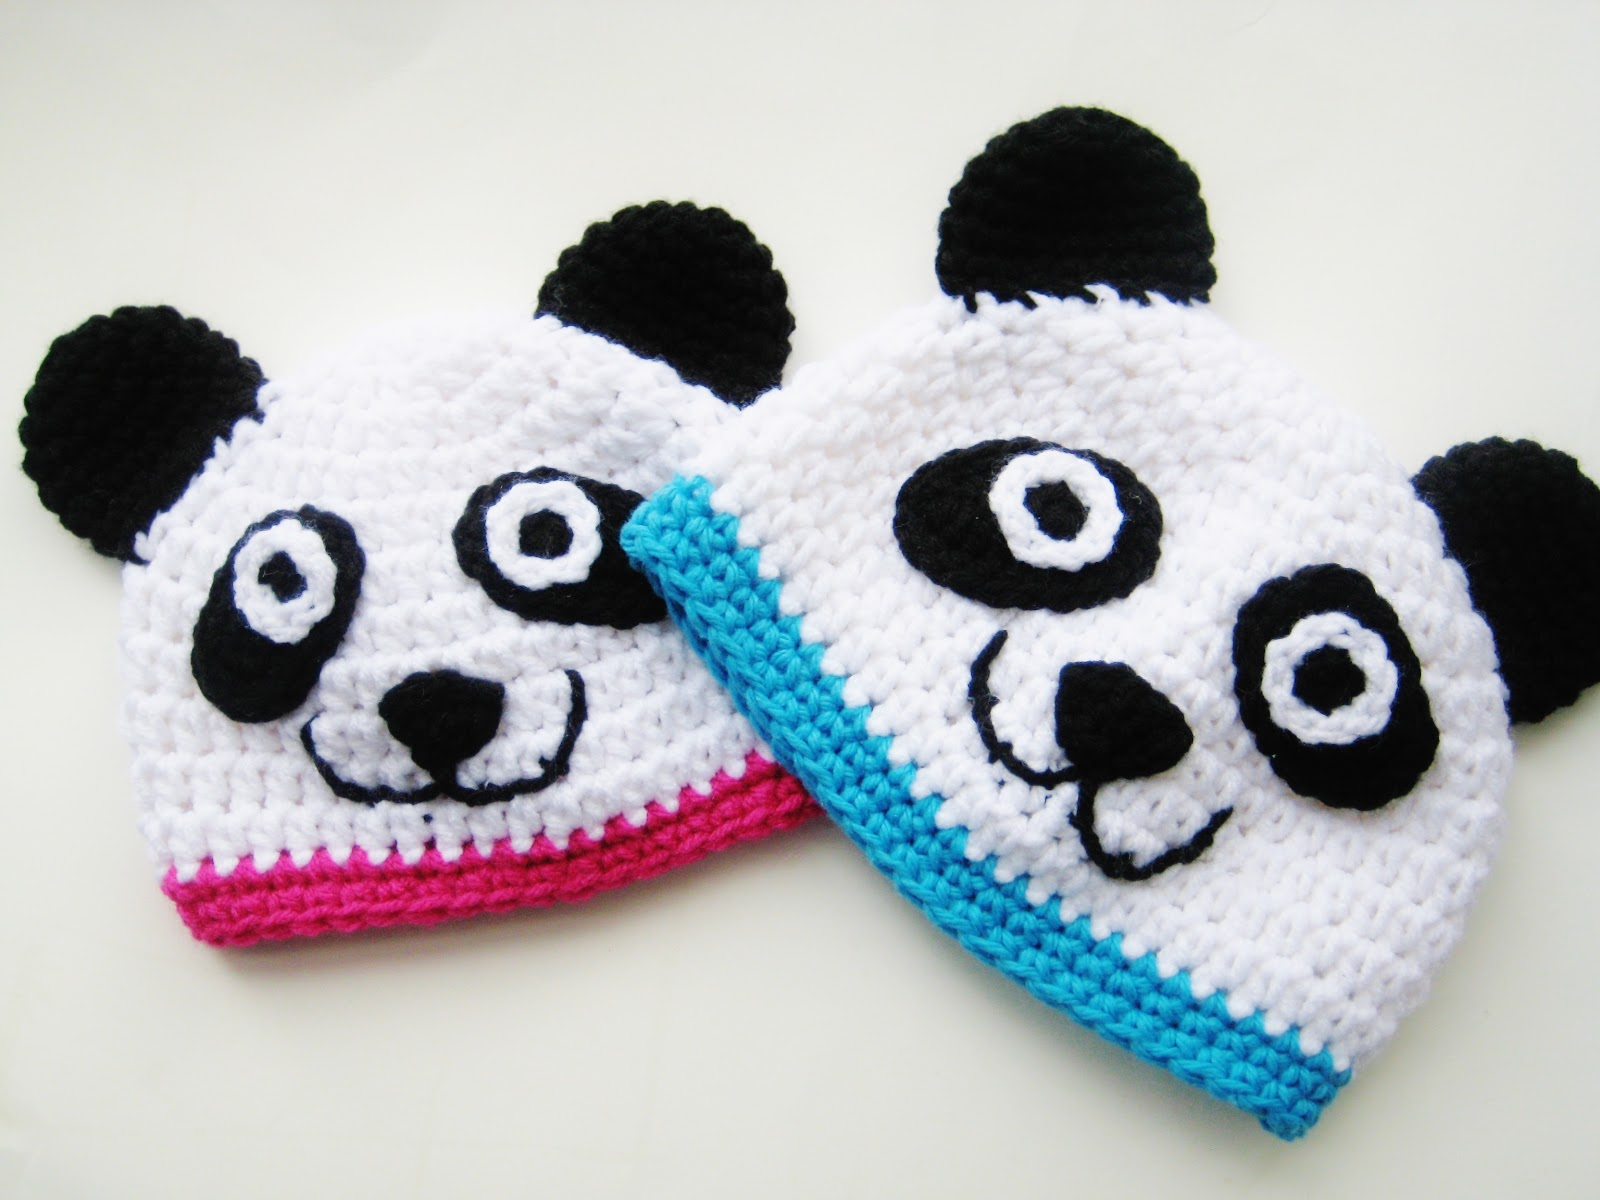 Free Crochet Patterns Childrens Animal Hats : Crochet Dreamz: Panda Animal Hat Crochet Pattern, Newborn ...